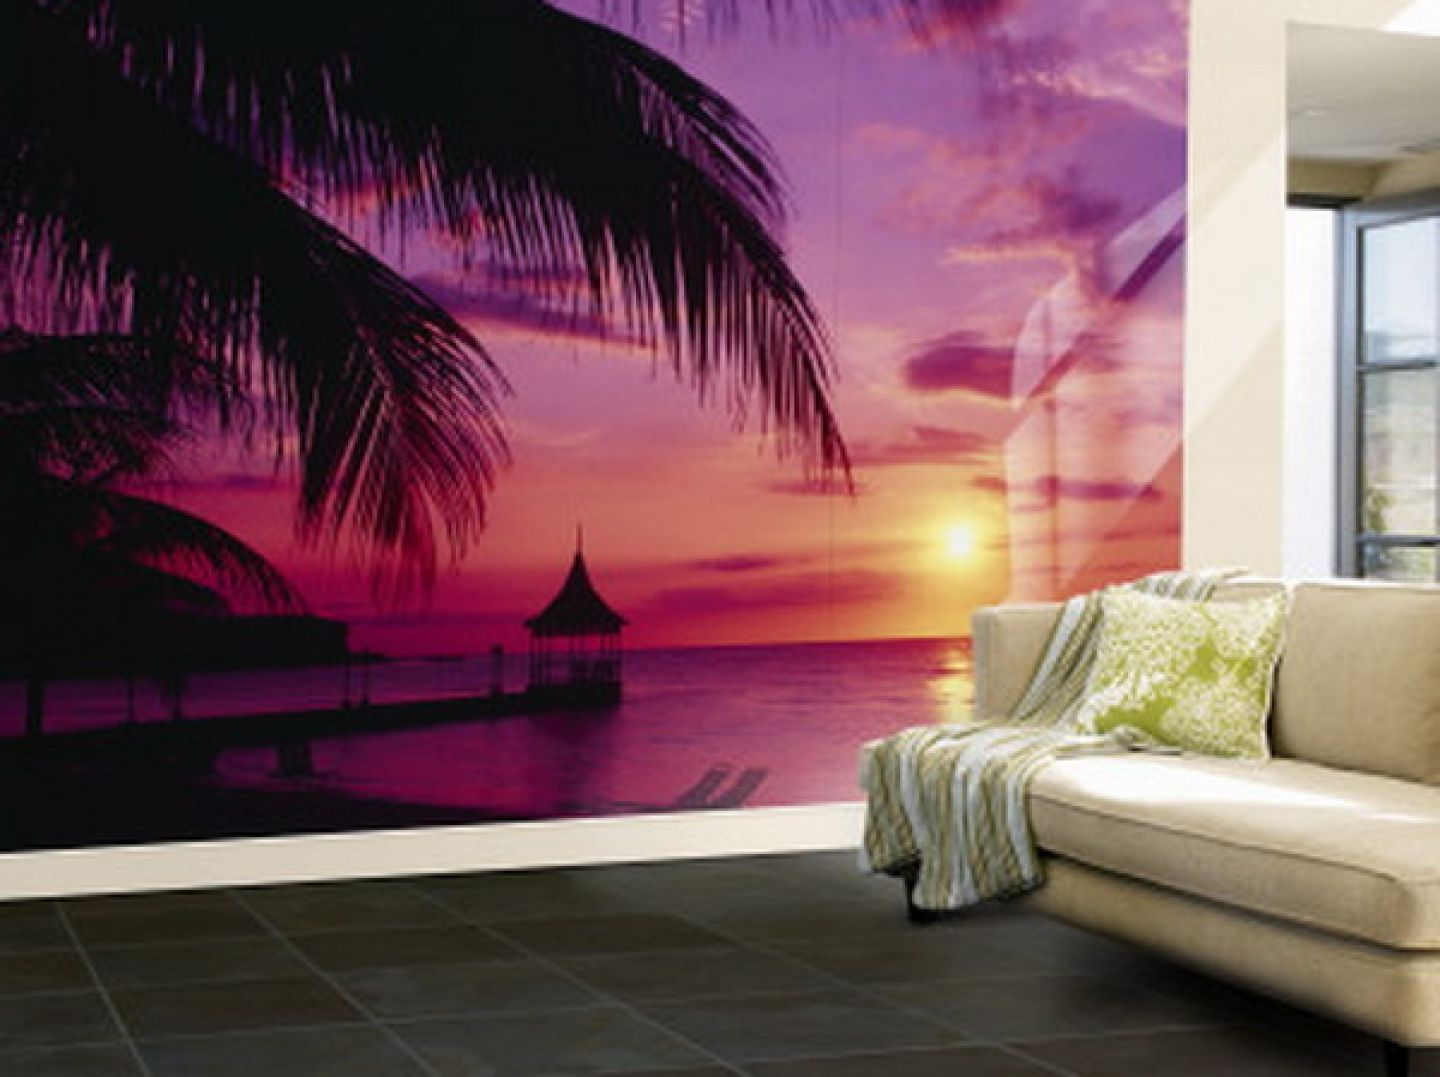 Purple living room wall murals purple ocean wallpaper murals for purple living room wall murals purple ocean wallpaper murals for living room ideas best wall amipublicfo Image collections